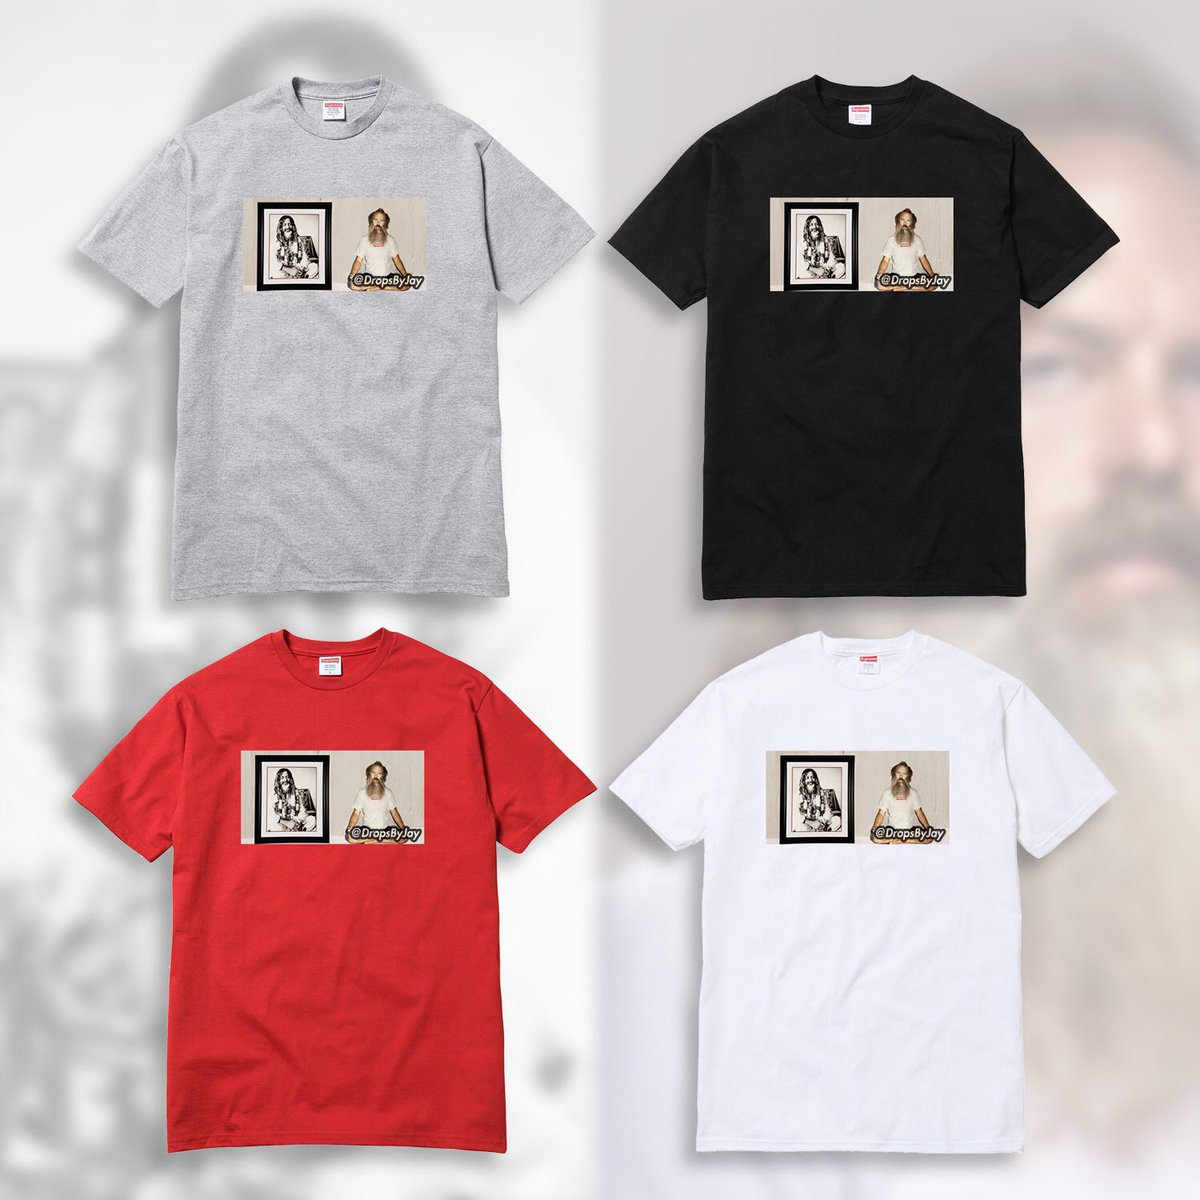 Supreme x Rick Rubin Spring / Summer 2018 (SS18) Photo Tee